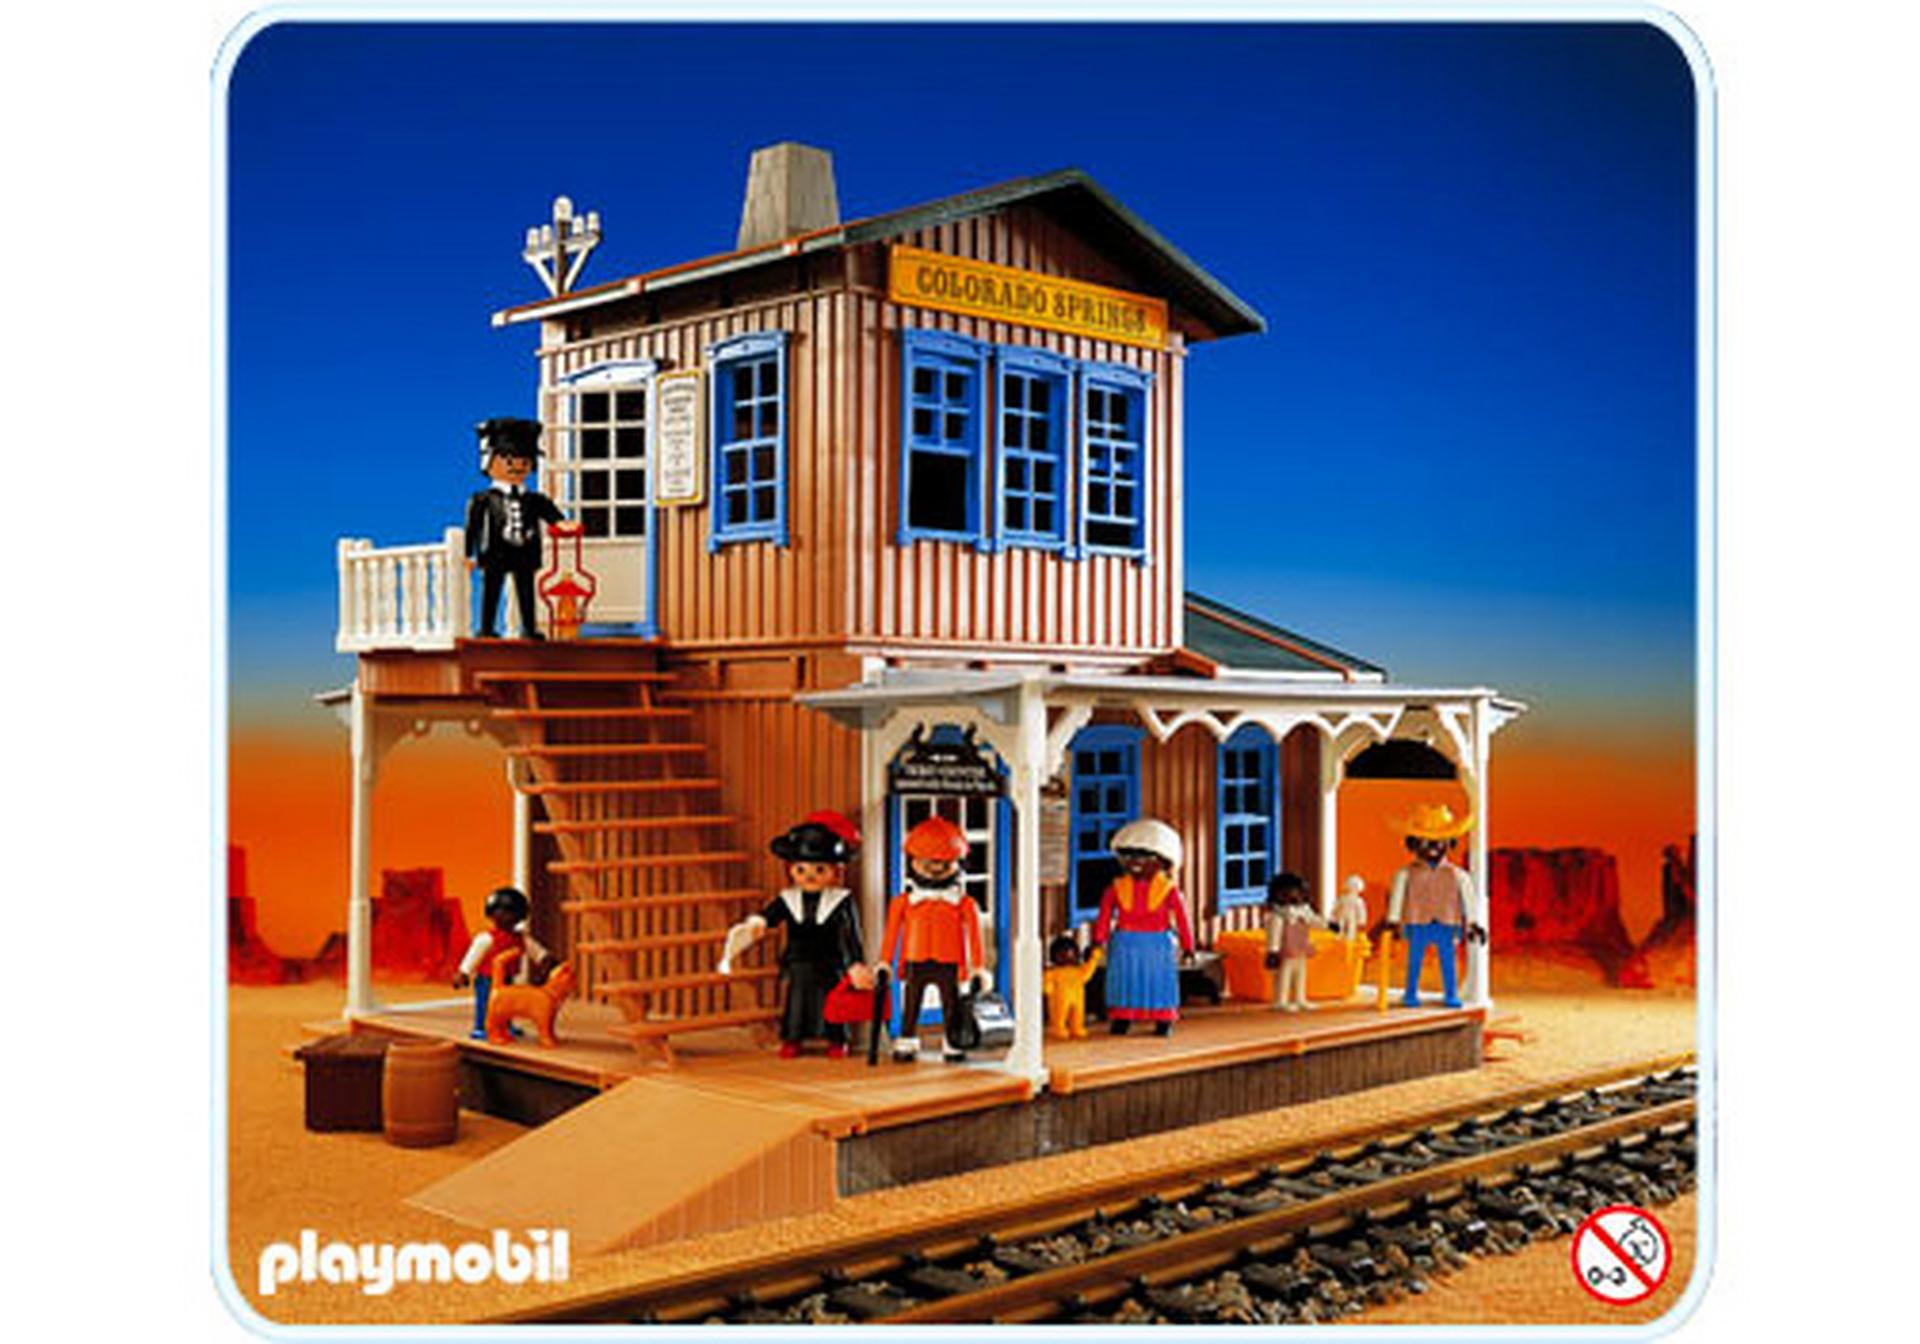 gare far west 3770 a playmobil france